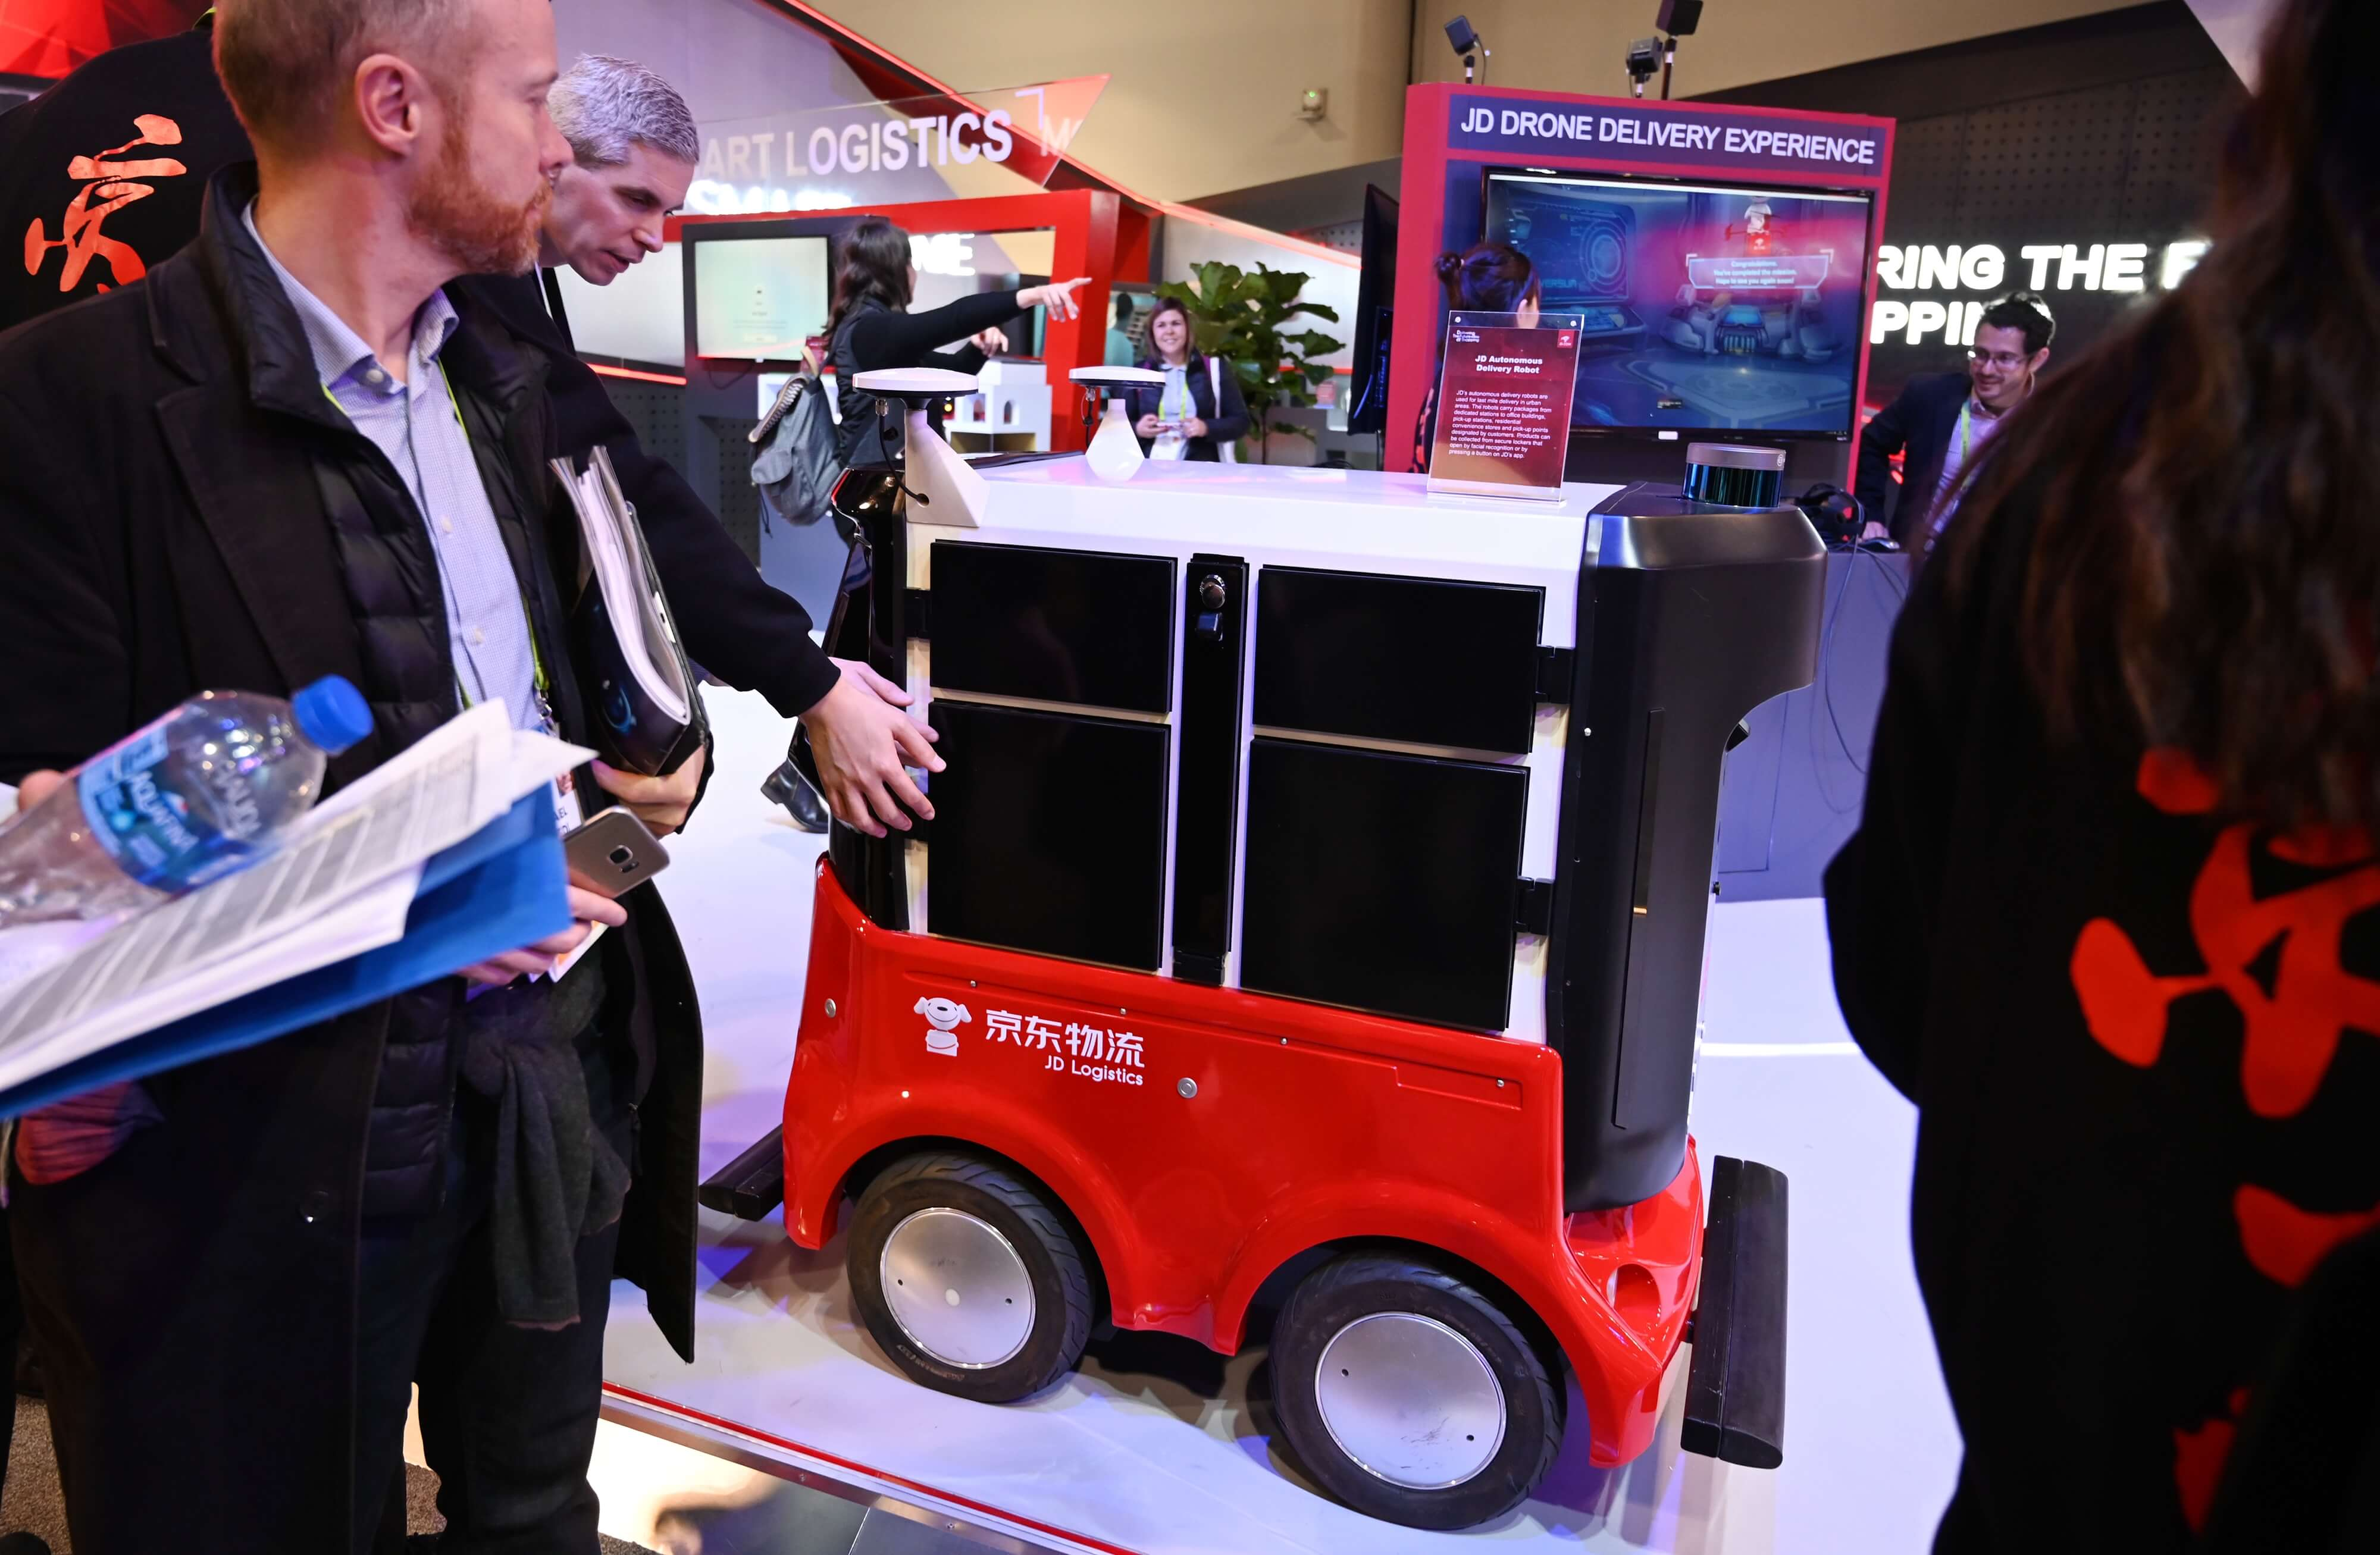 Chinese online retail and logistics company JD displays its Autonomous Delivery Robot at CES 2019